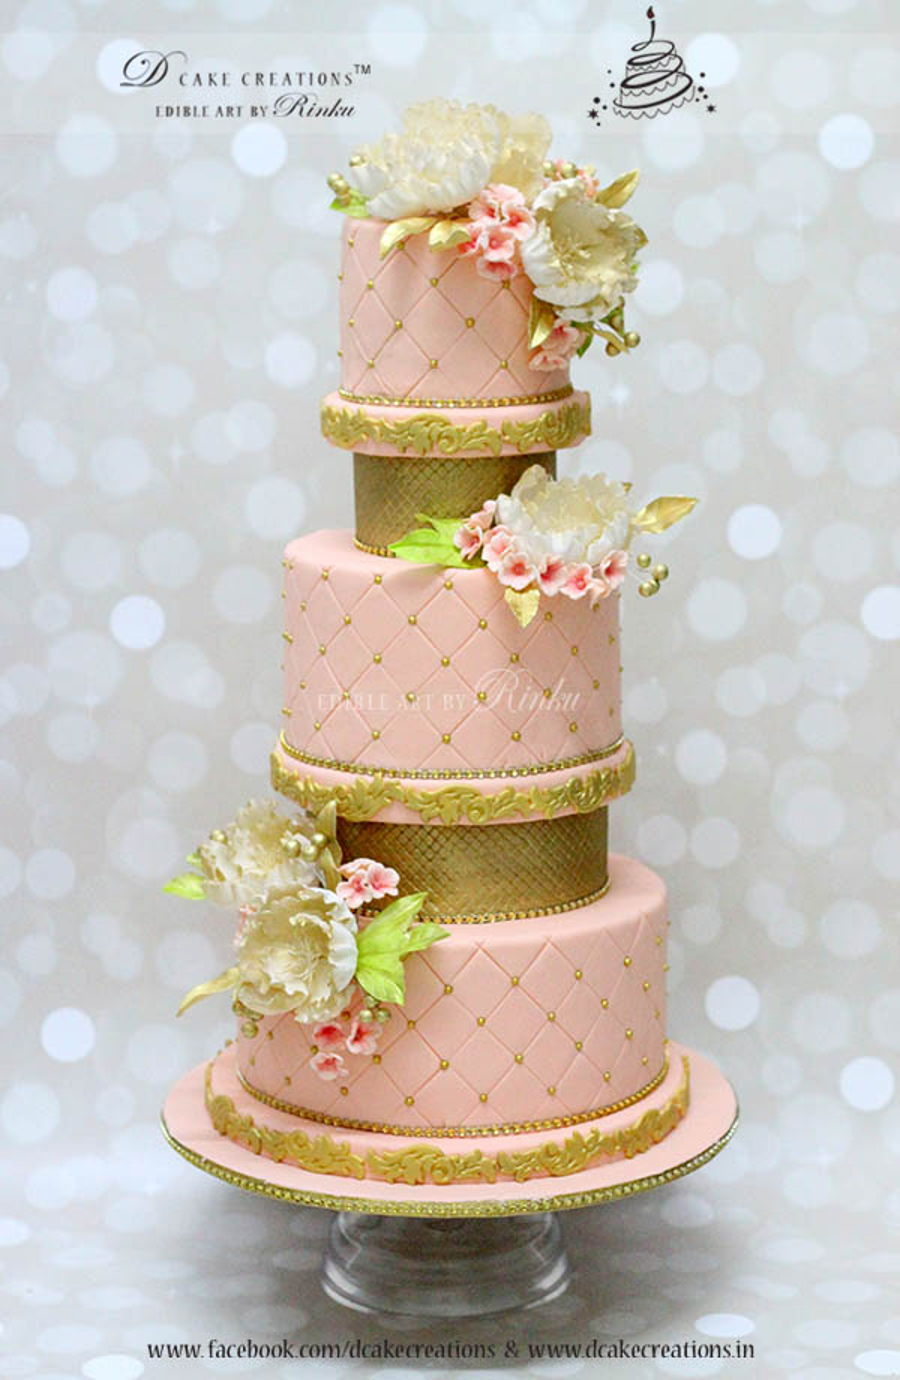 Five Tier Pink And Gold Wedding Cake - CakeCentral.com